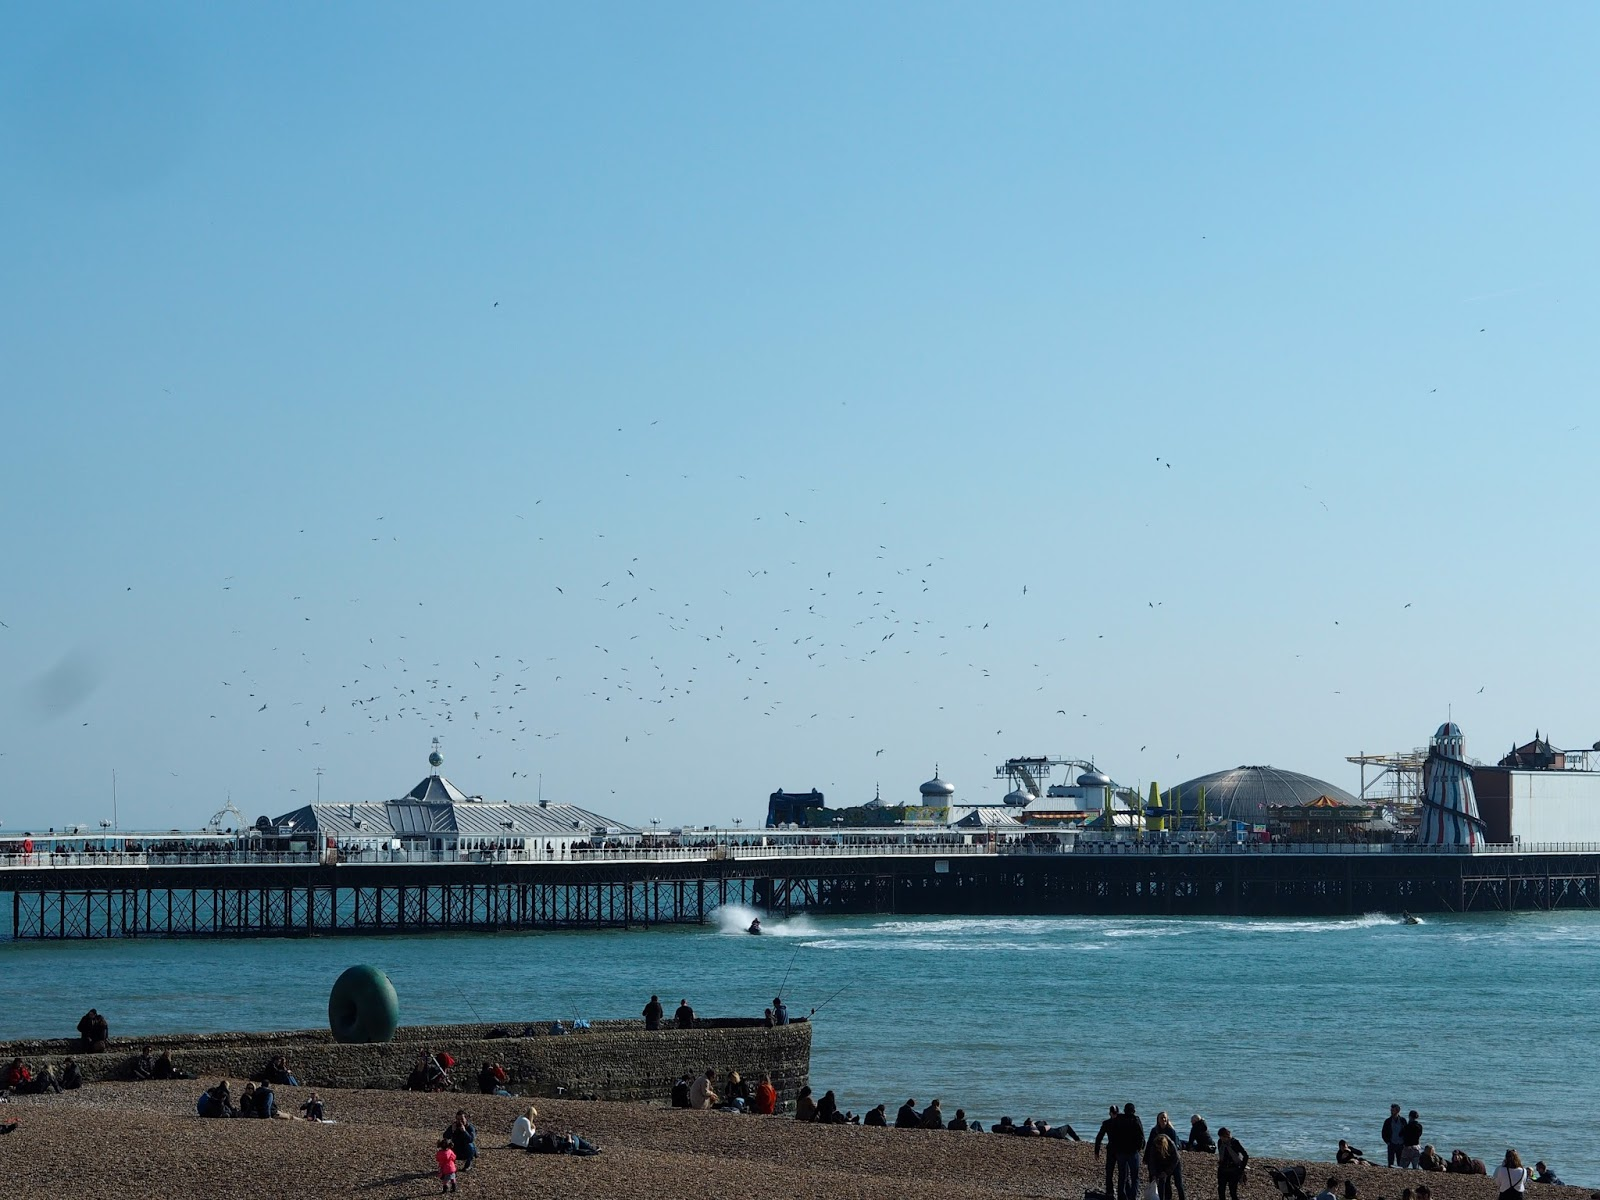 Brighton Pier & flock of birds